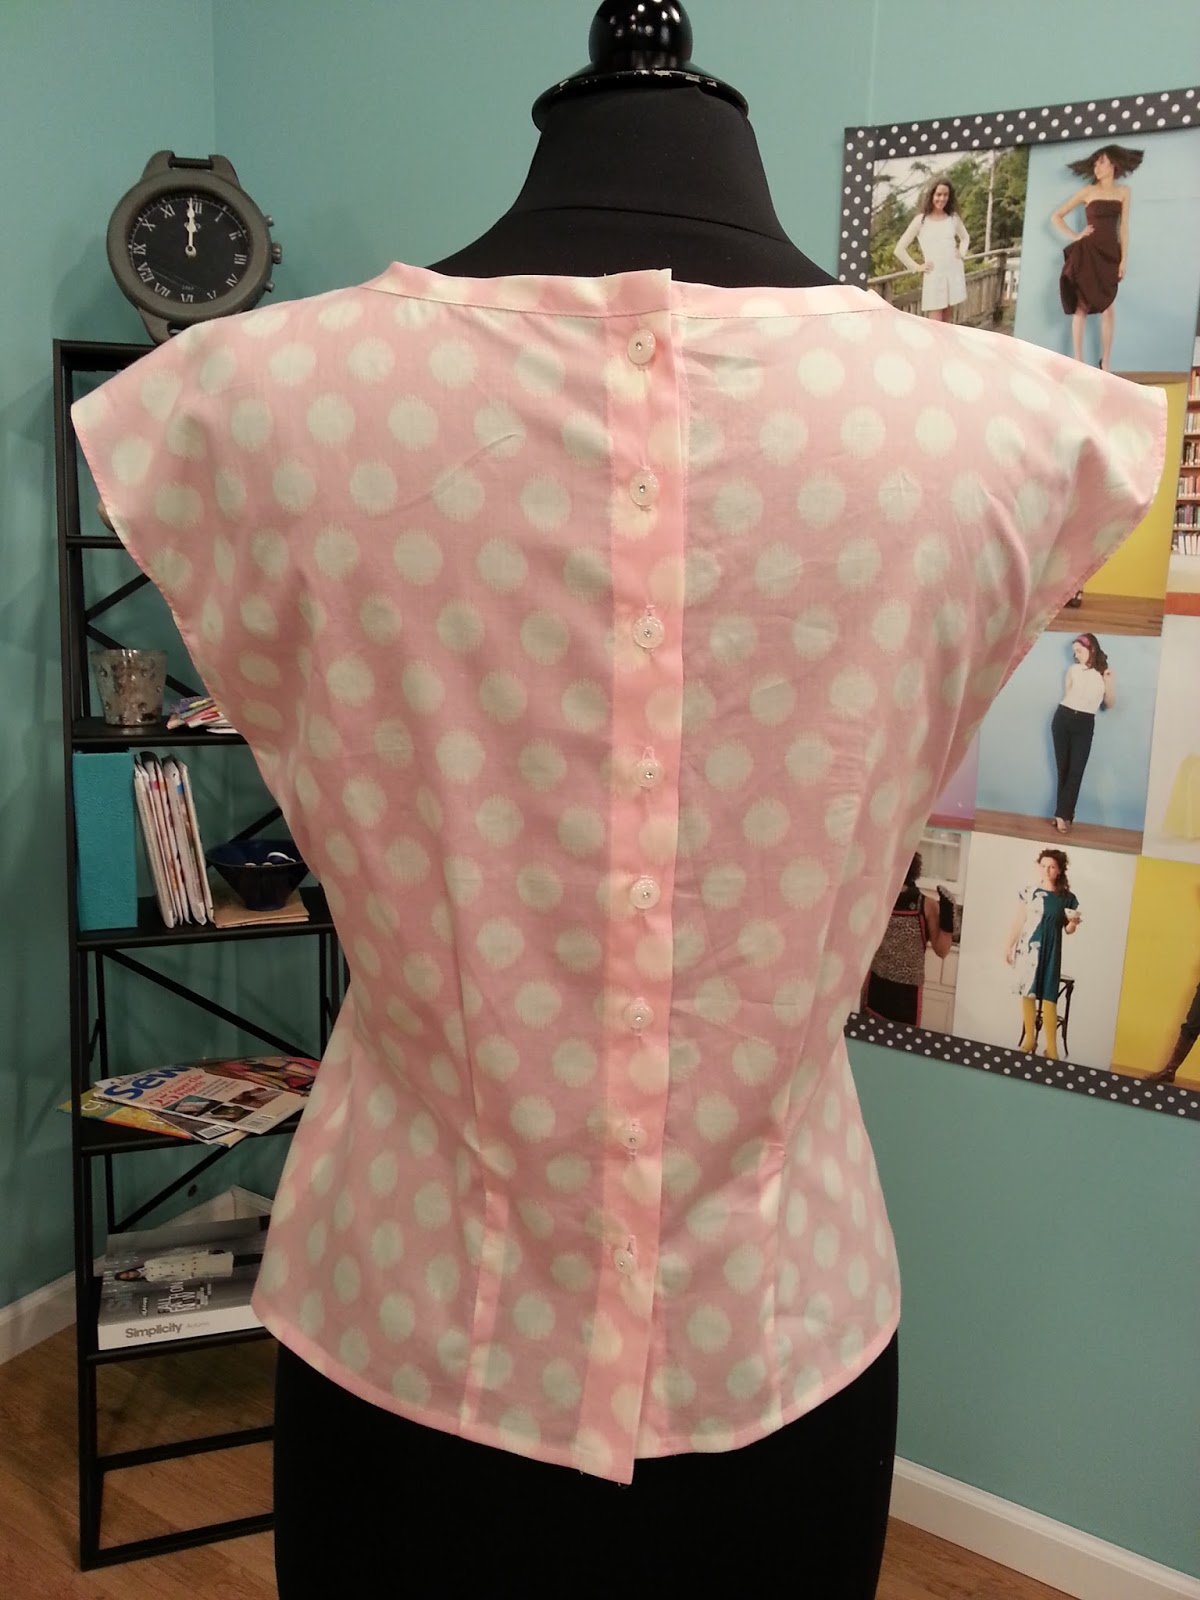 How to sew a blouse without a pattern: tips for beginners